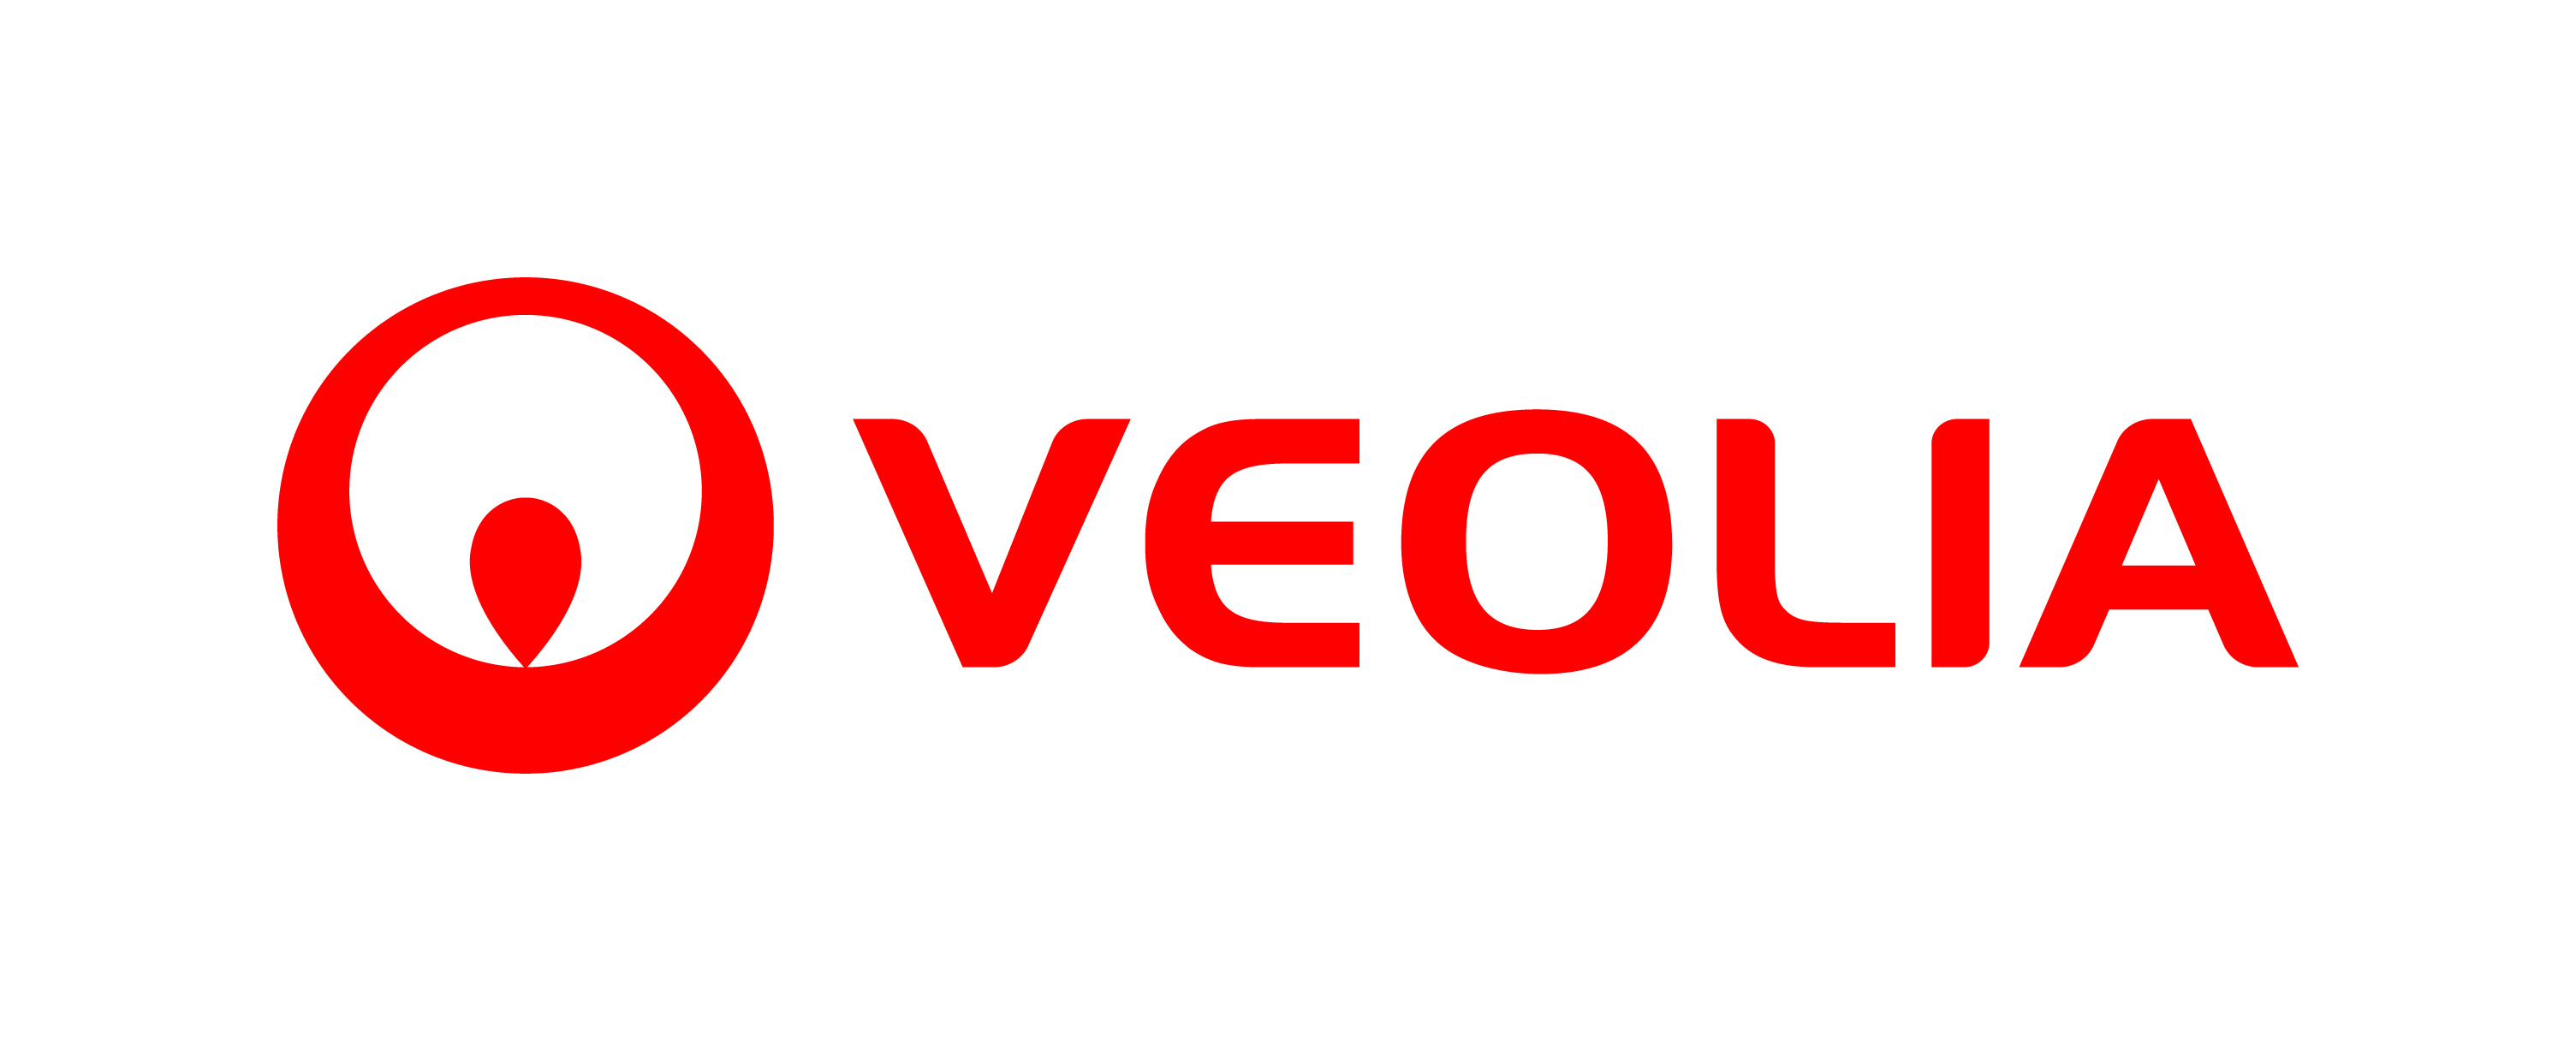 More about VEOLIA